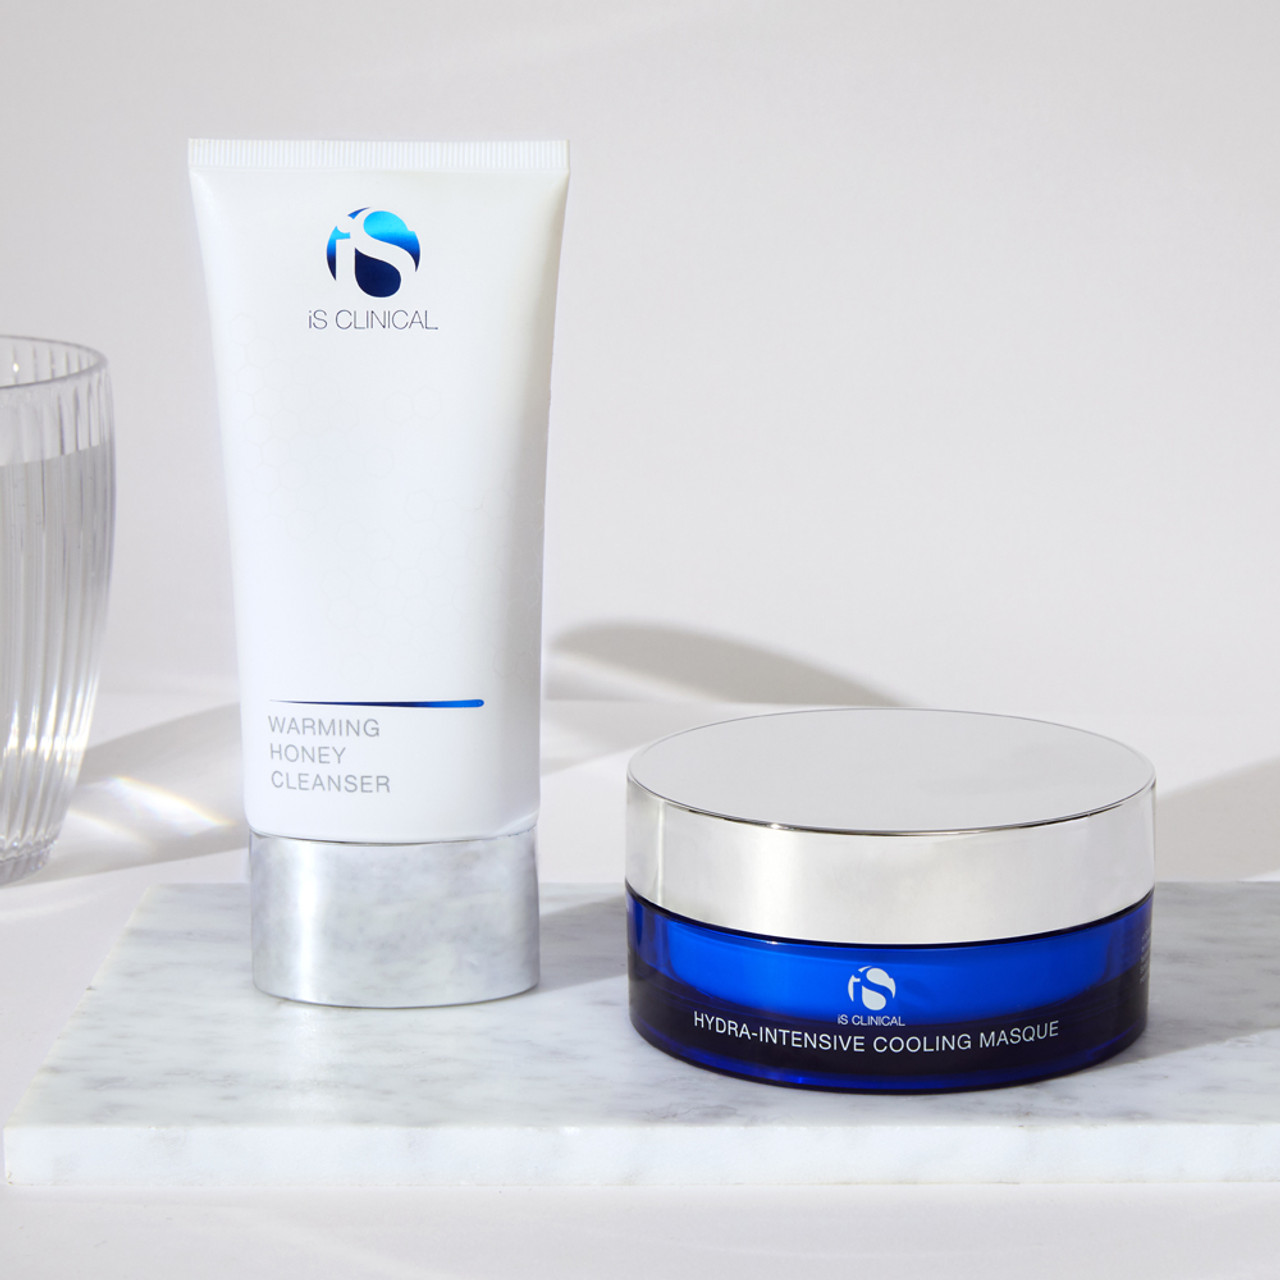 iS Clinical Warm Up, Cool Down Facial Kit